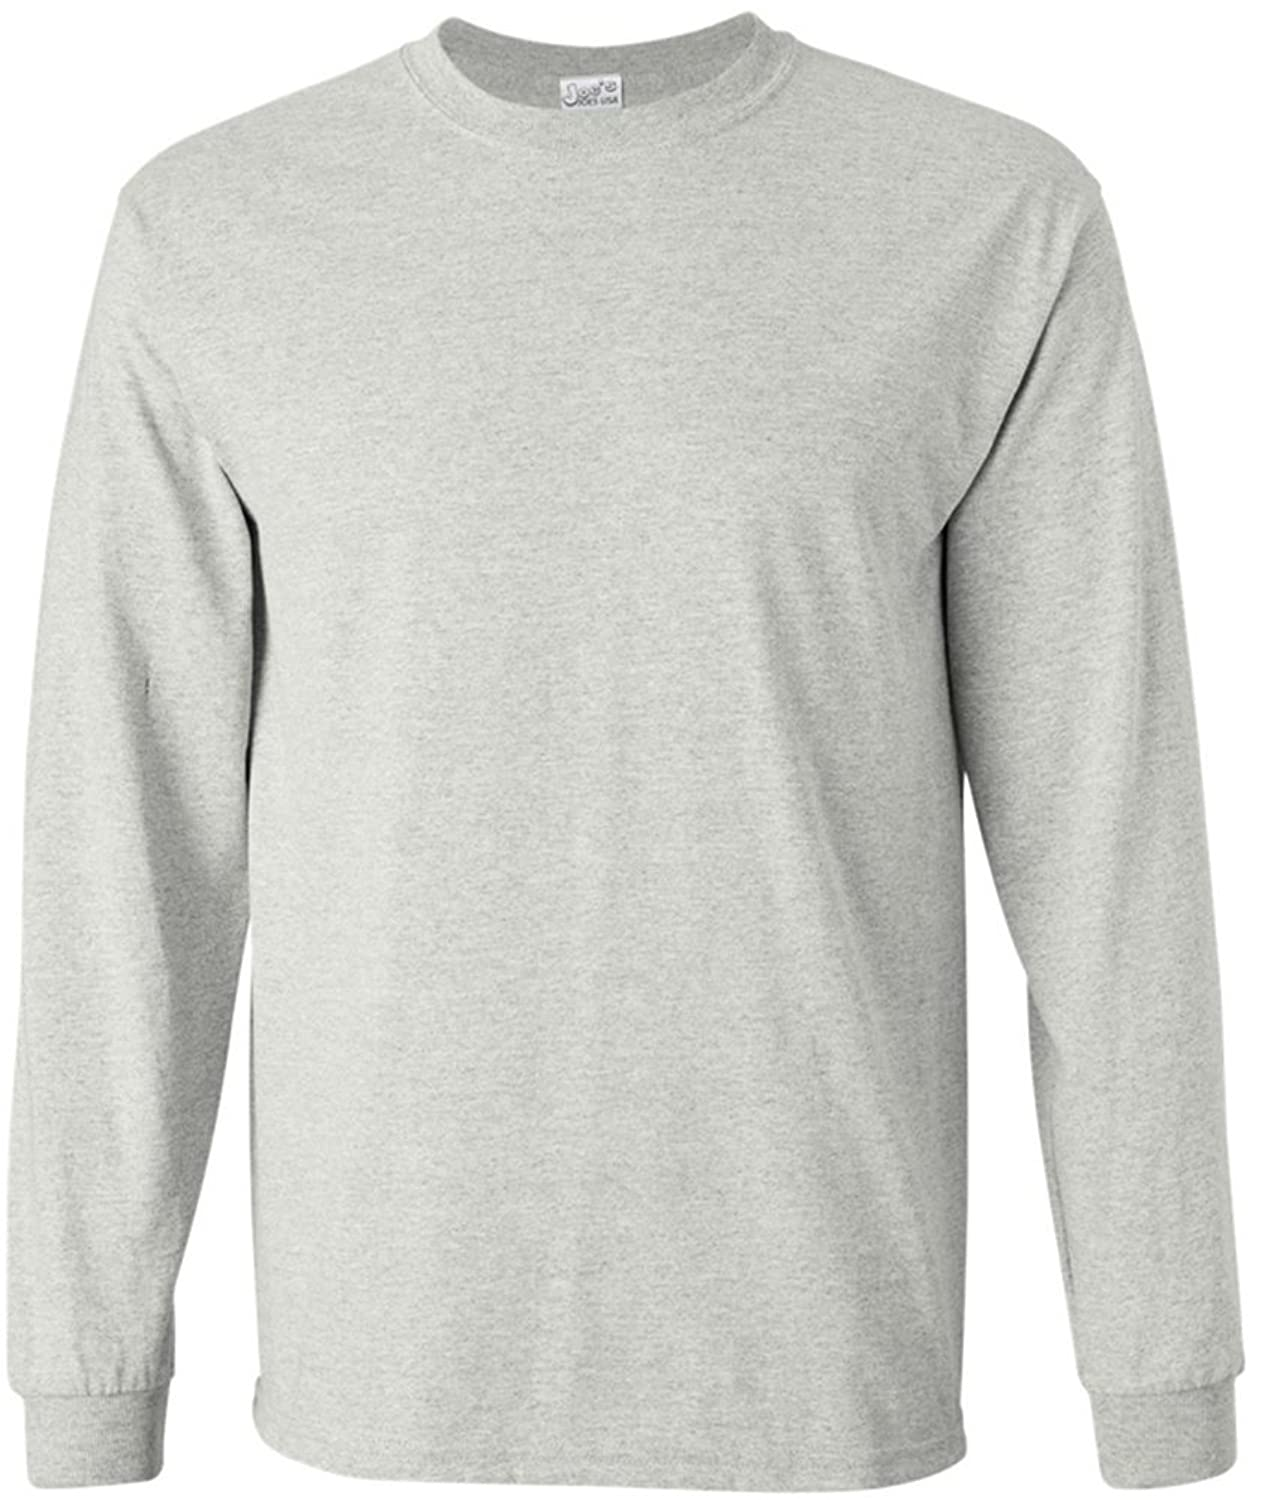 Shop adidas Men Long Sleeve Shirts on getessay2016.tk Browse all products, from shoes to clothing and accessories in this collection. Find all available syles and colors of Long Sleeve Shirts in the official adidas online store.